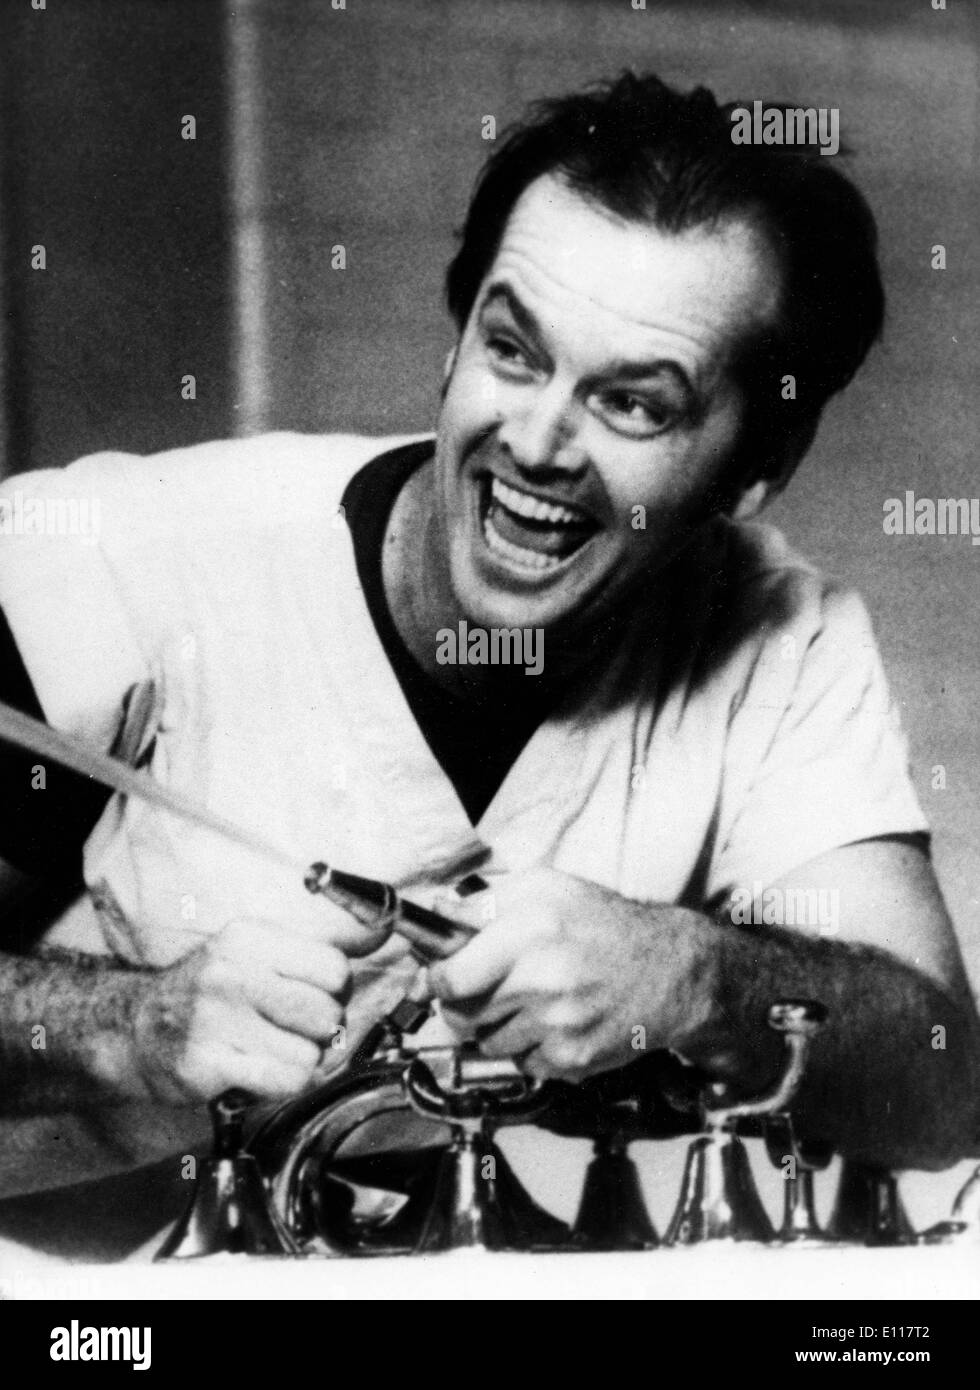 Jack Nicholson in 'One Flew Over the Cuckoos Nest' Stock Photo